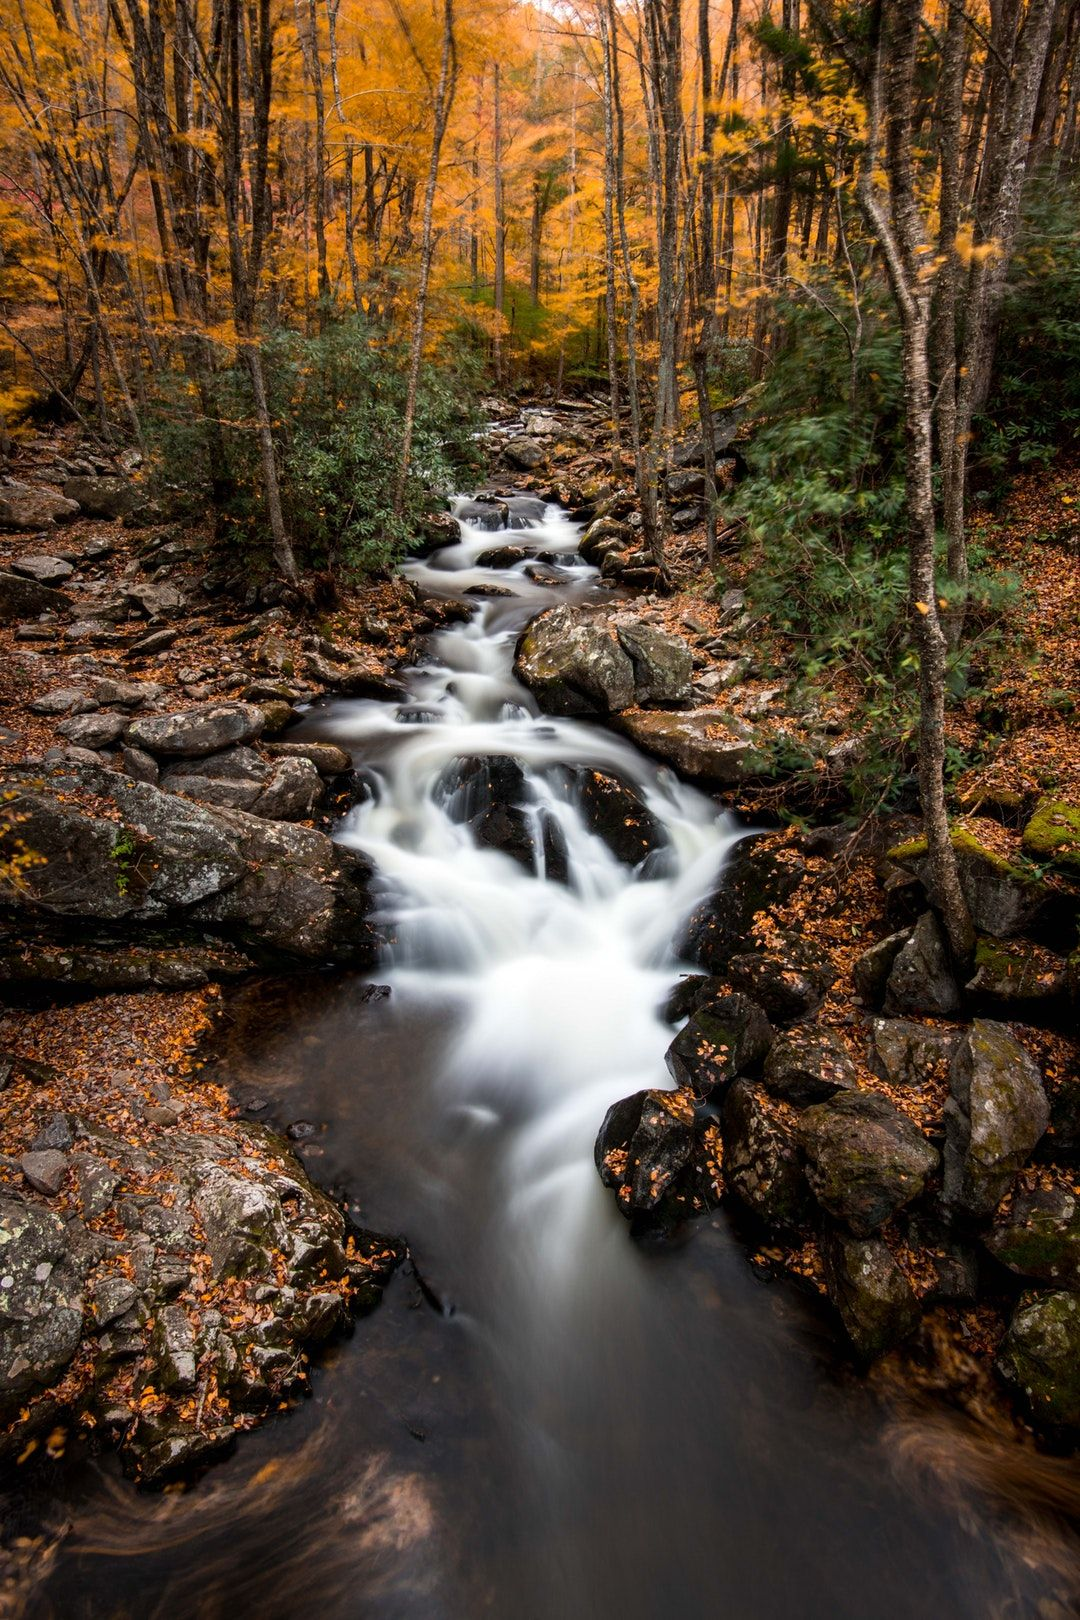 River Creek Stream And Tree Hd Photo By Nathan Anderson Nathananderson On Unsplash Time Lapse Photo Photo Water